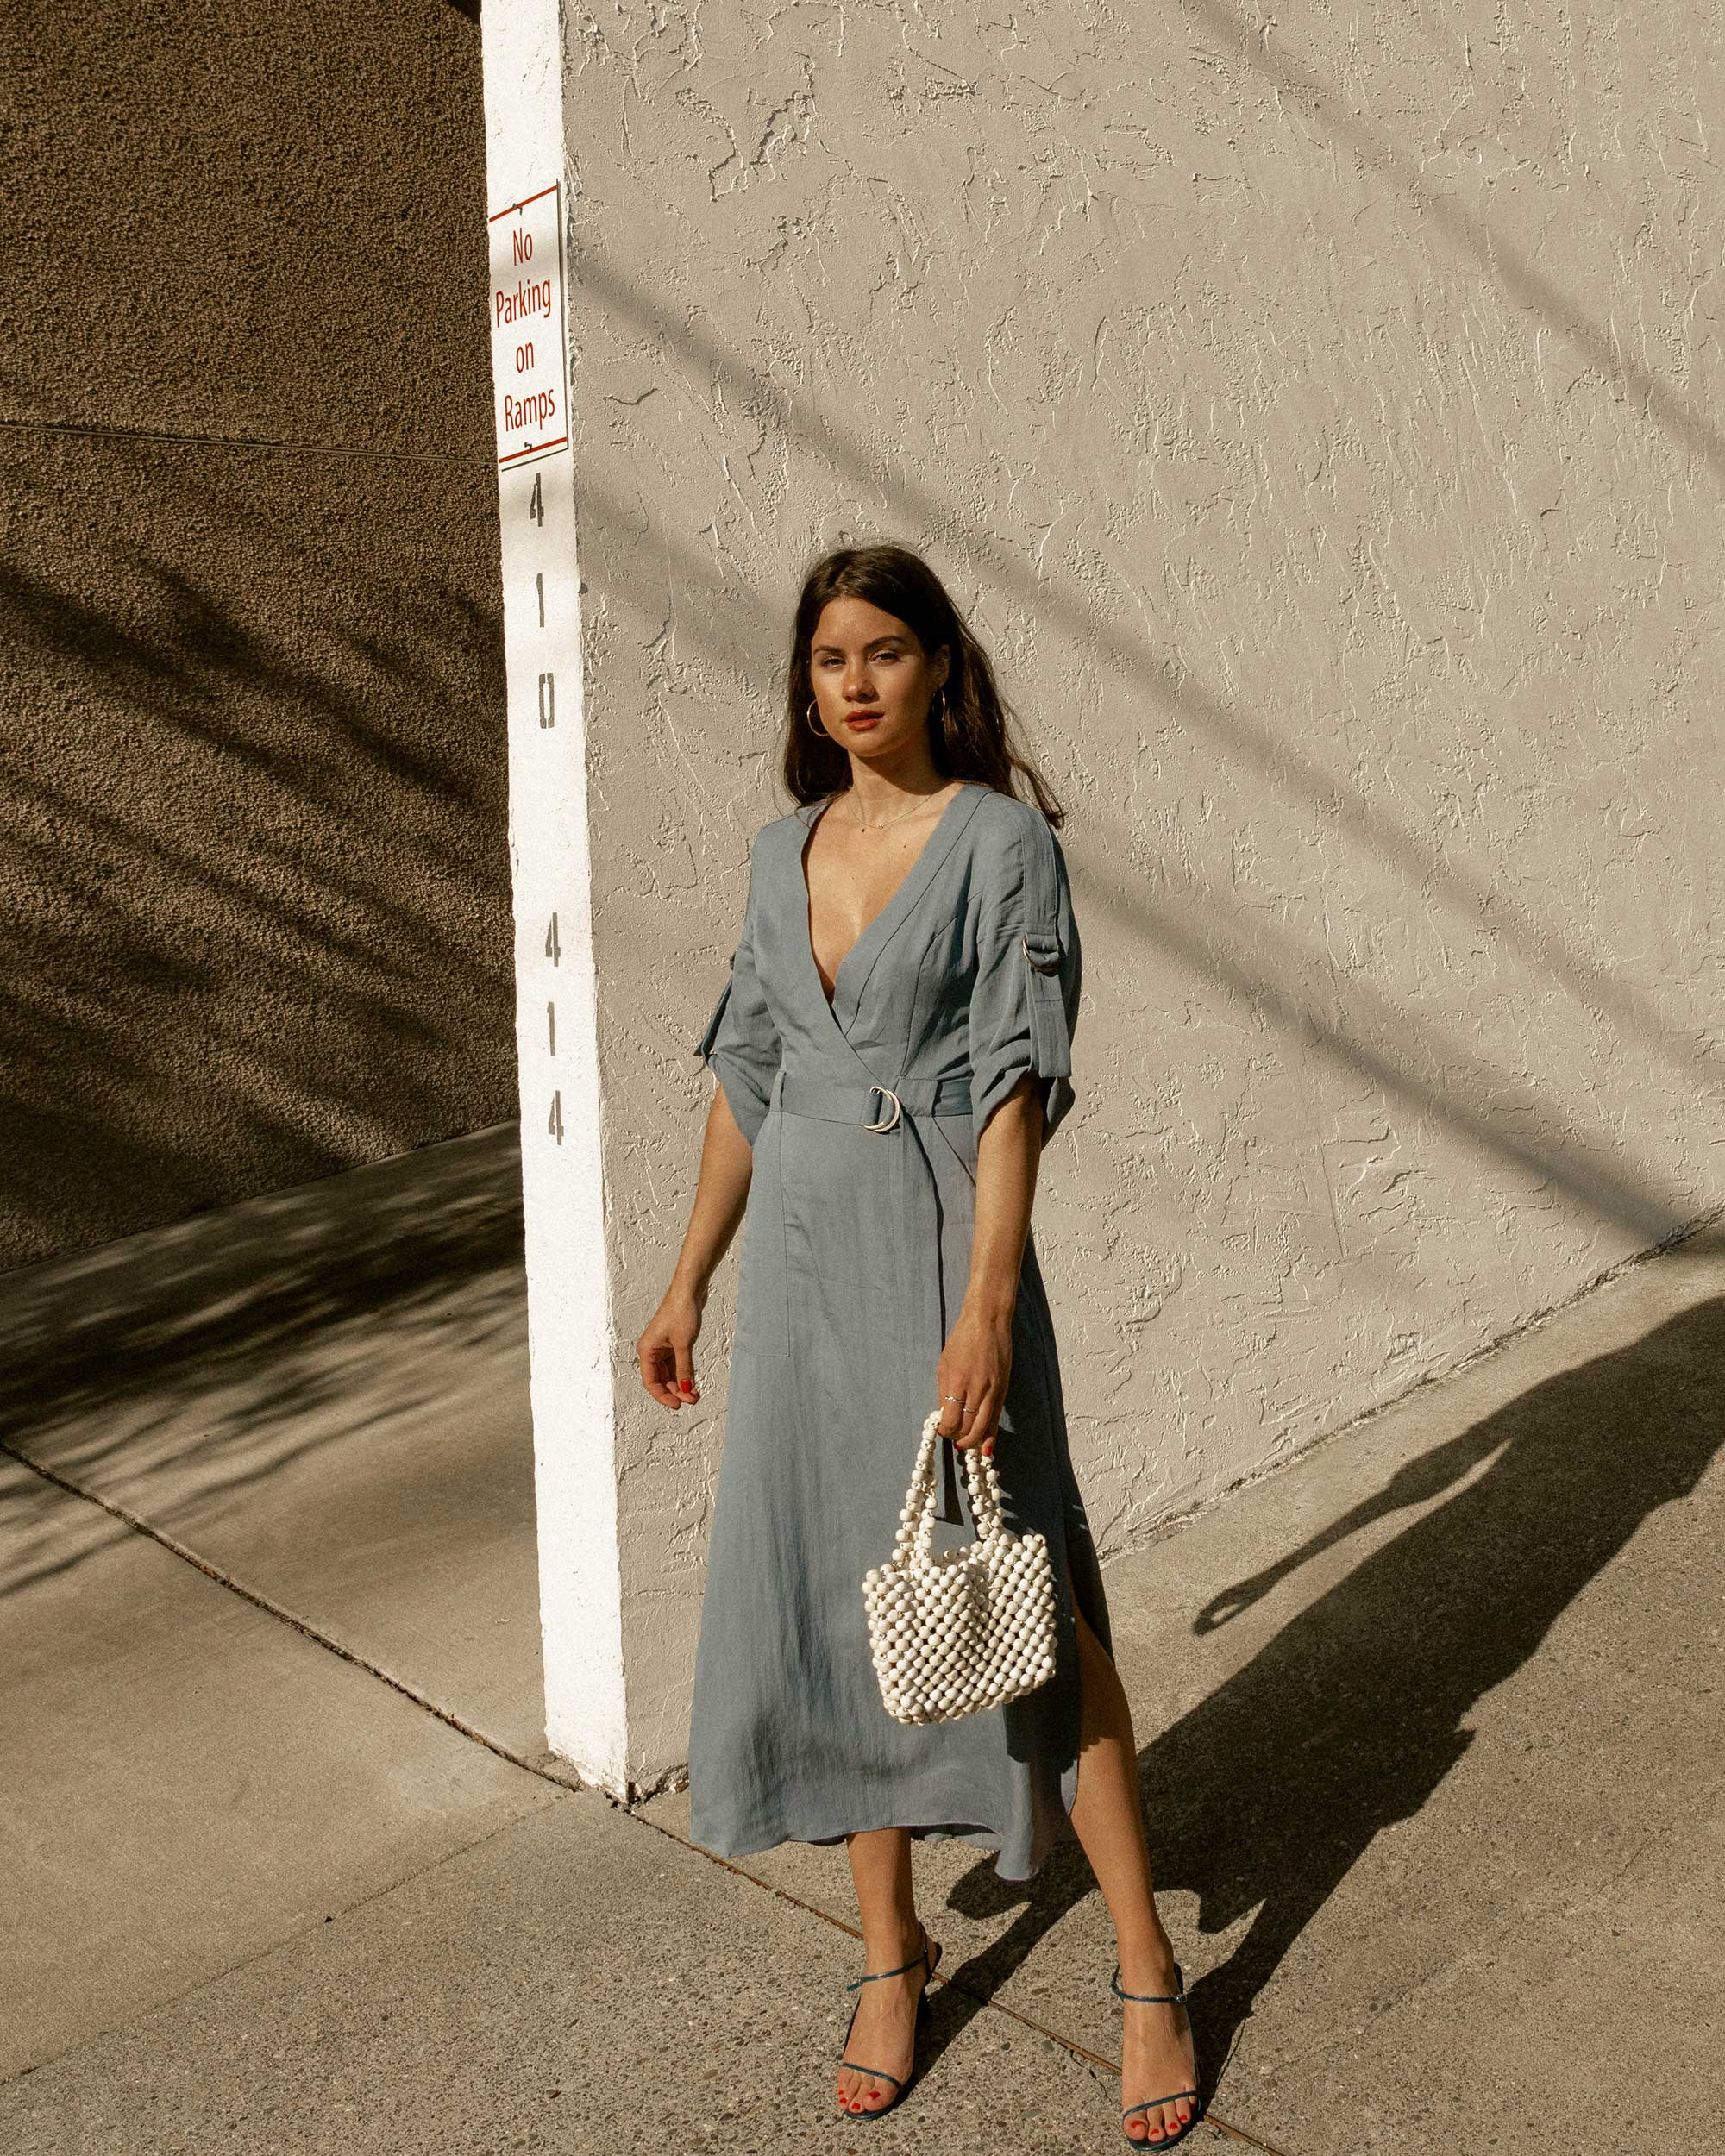 Sarah Butler of Sarah Styles Seattle wears BCBGMAXAZRIA Wrap Trench Dress in for the perfect spring outfit | @sarahchristine8.jpg